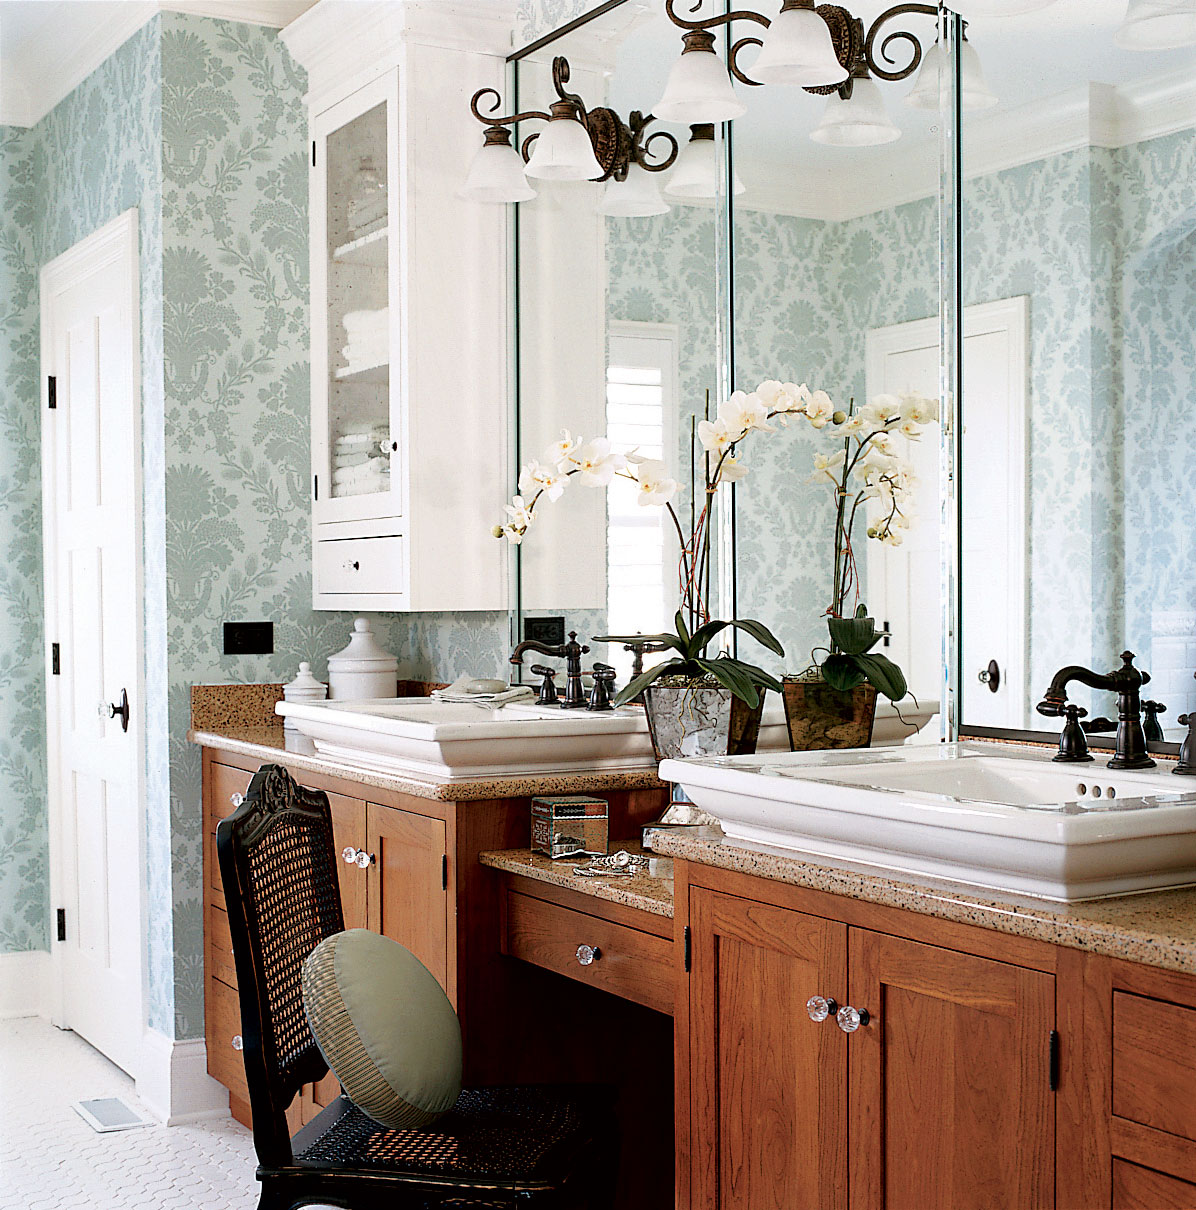 retreat with wonderful bathroom cabinets plain fancy cabinetry